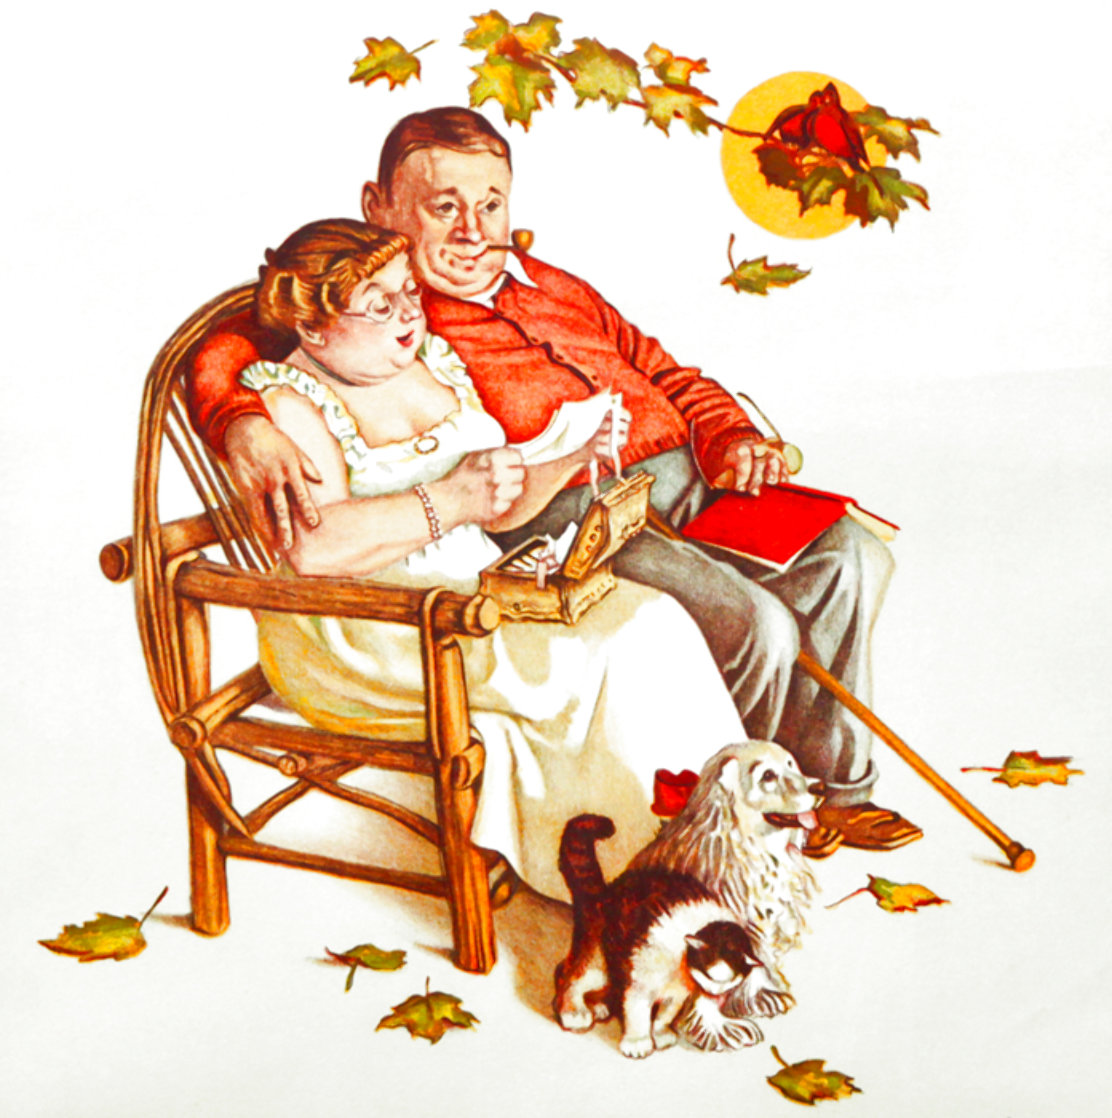 Fondly Do We Remember AP Limited Edition Print by Norman Rockwell